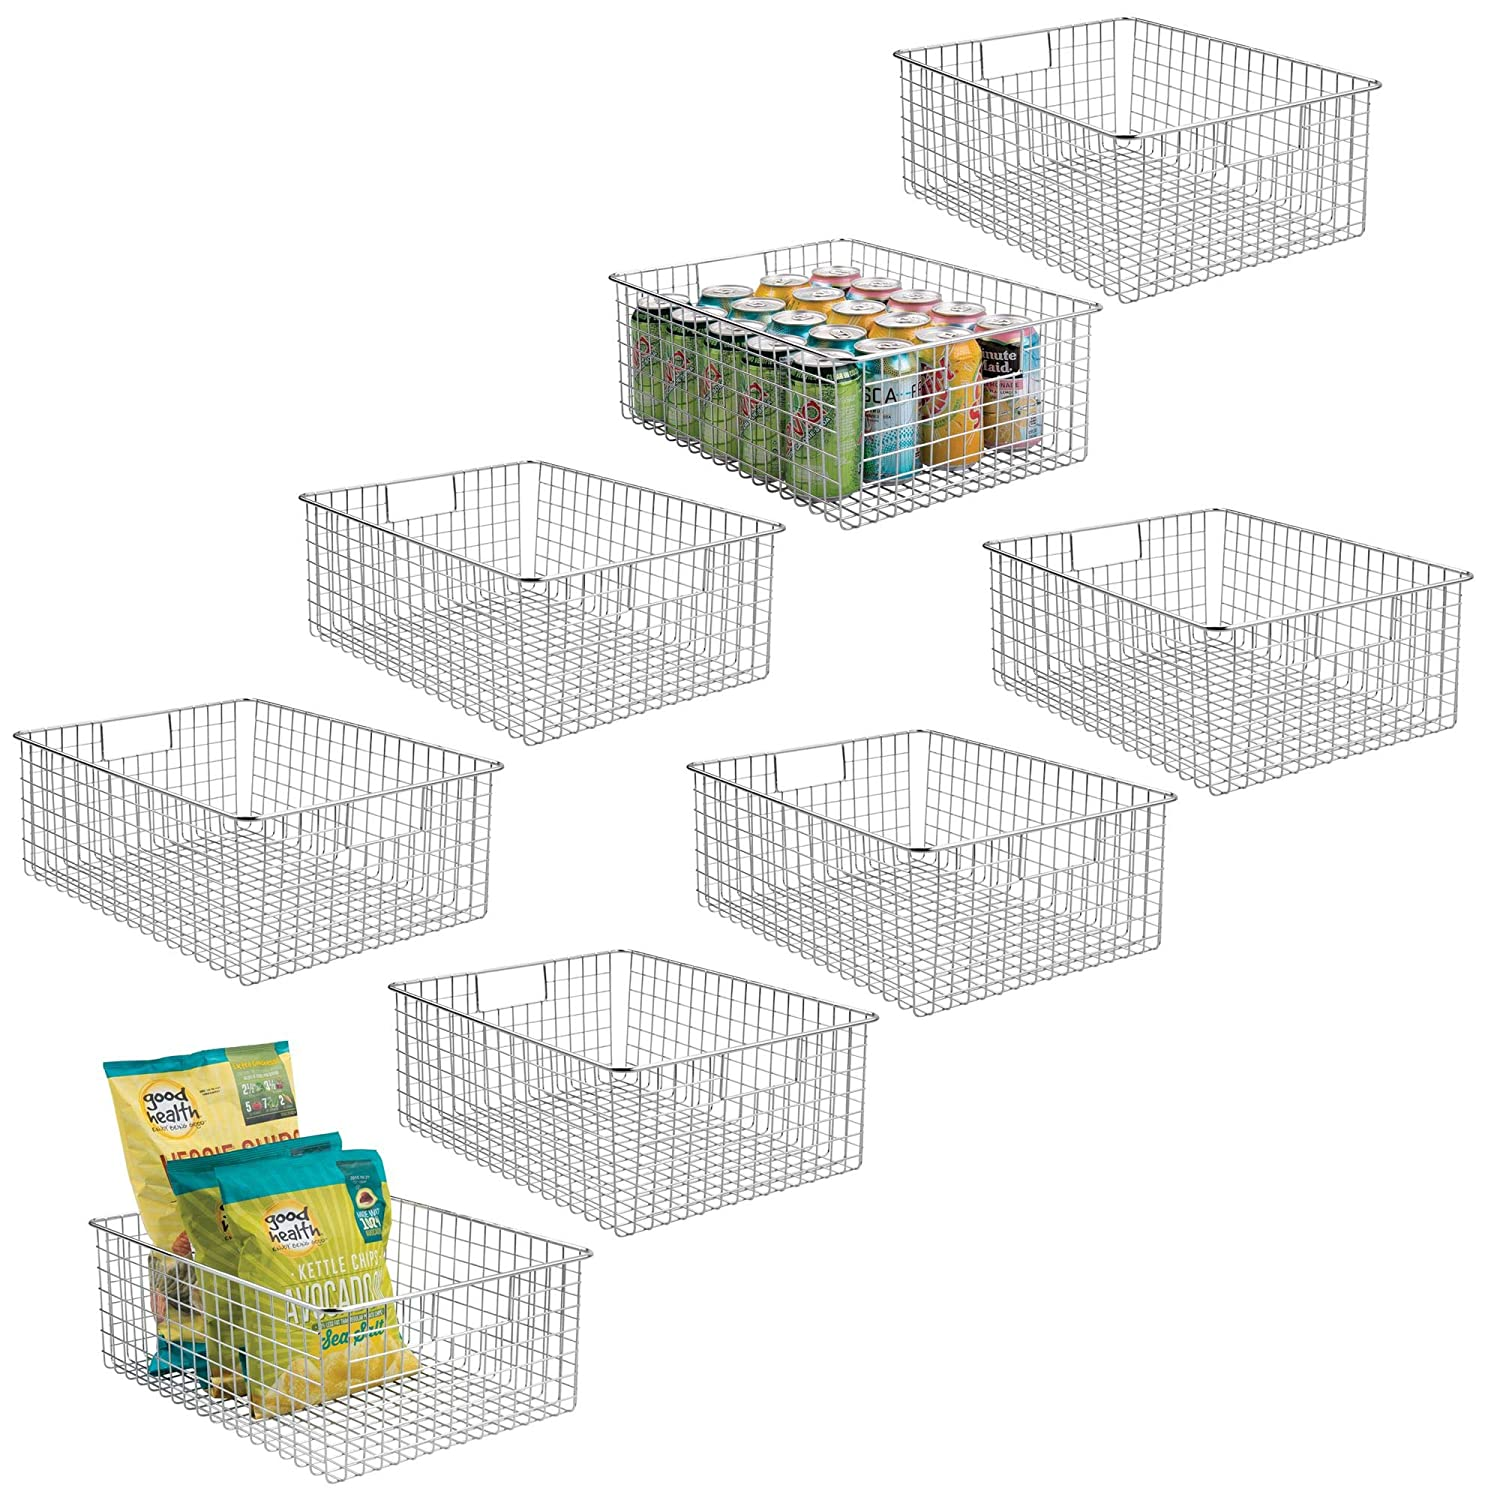 mDesign Farmhouse Decor Metal Wire Food Organizer Storage Bin Baskets with Handles for Kitchen Cabinets, Pantry, Bathroom, Laundry Room, Closets, Garage - 8 Pack - Chrome